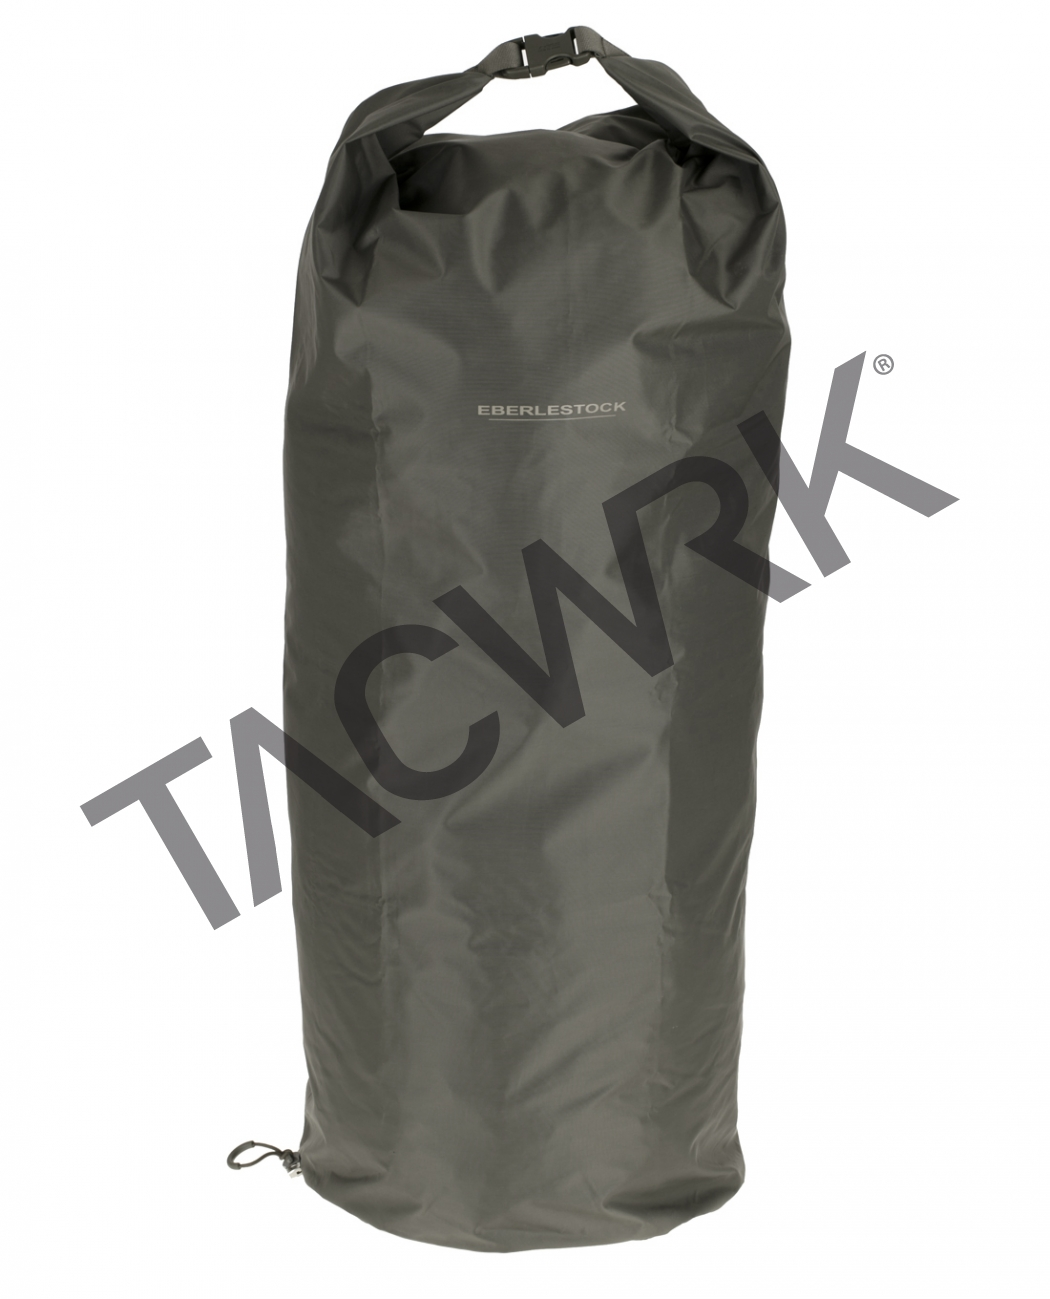 154bee706e Eberlestock J-Type Dry Bag Large Military Green - TACWRK